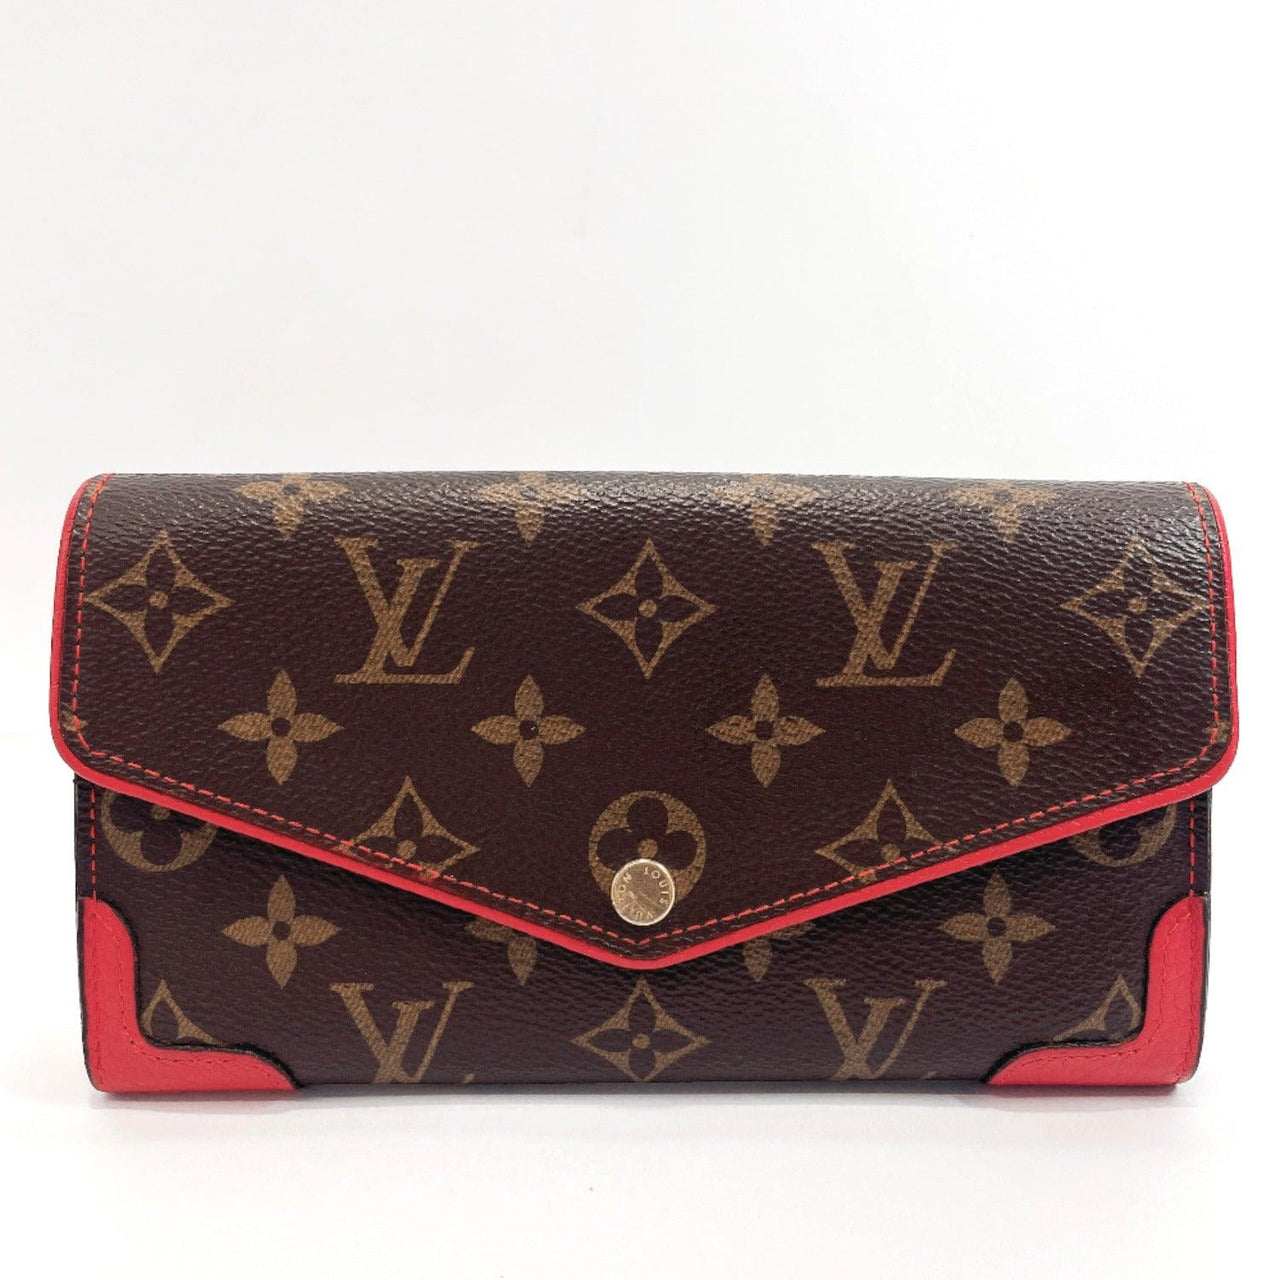 LOUIS VUITTON purse M61184 Portefeiulle Sara Retiro Monogram canvas Red Brown Women Used